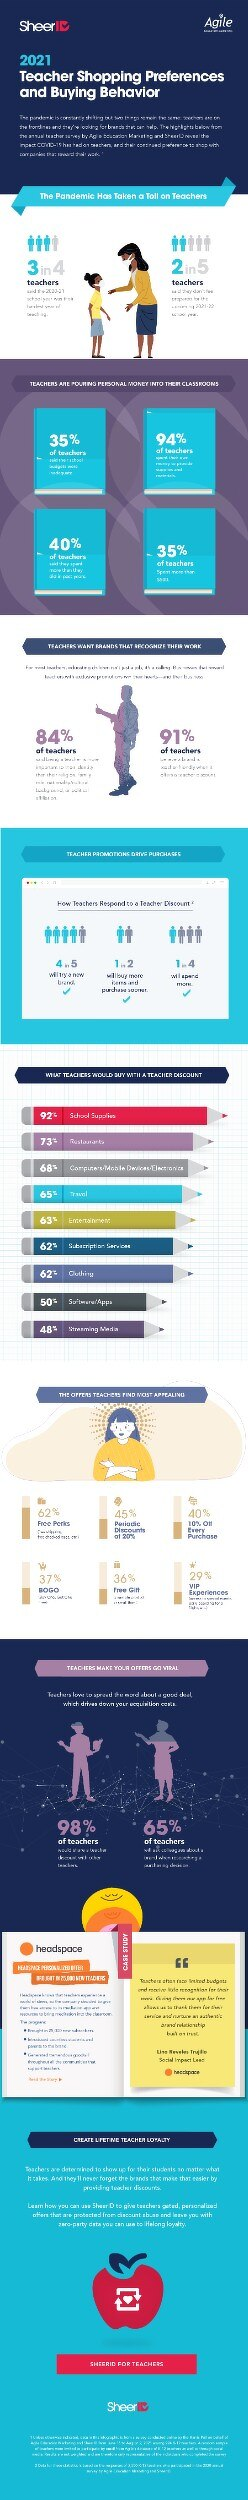 2021 Teacher Shopping Preferences and Buying Behavior